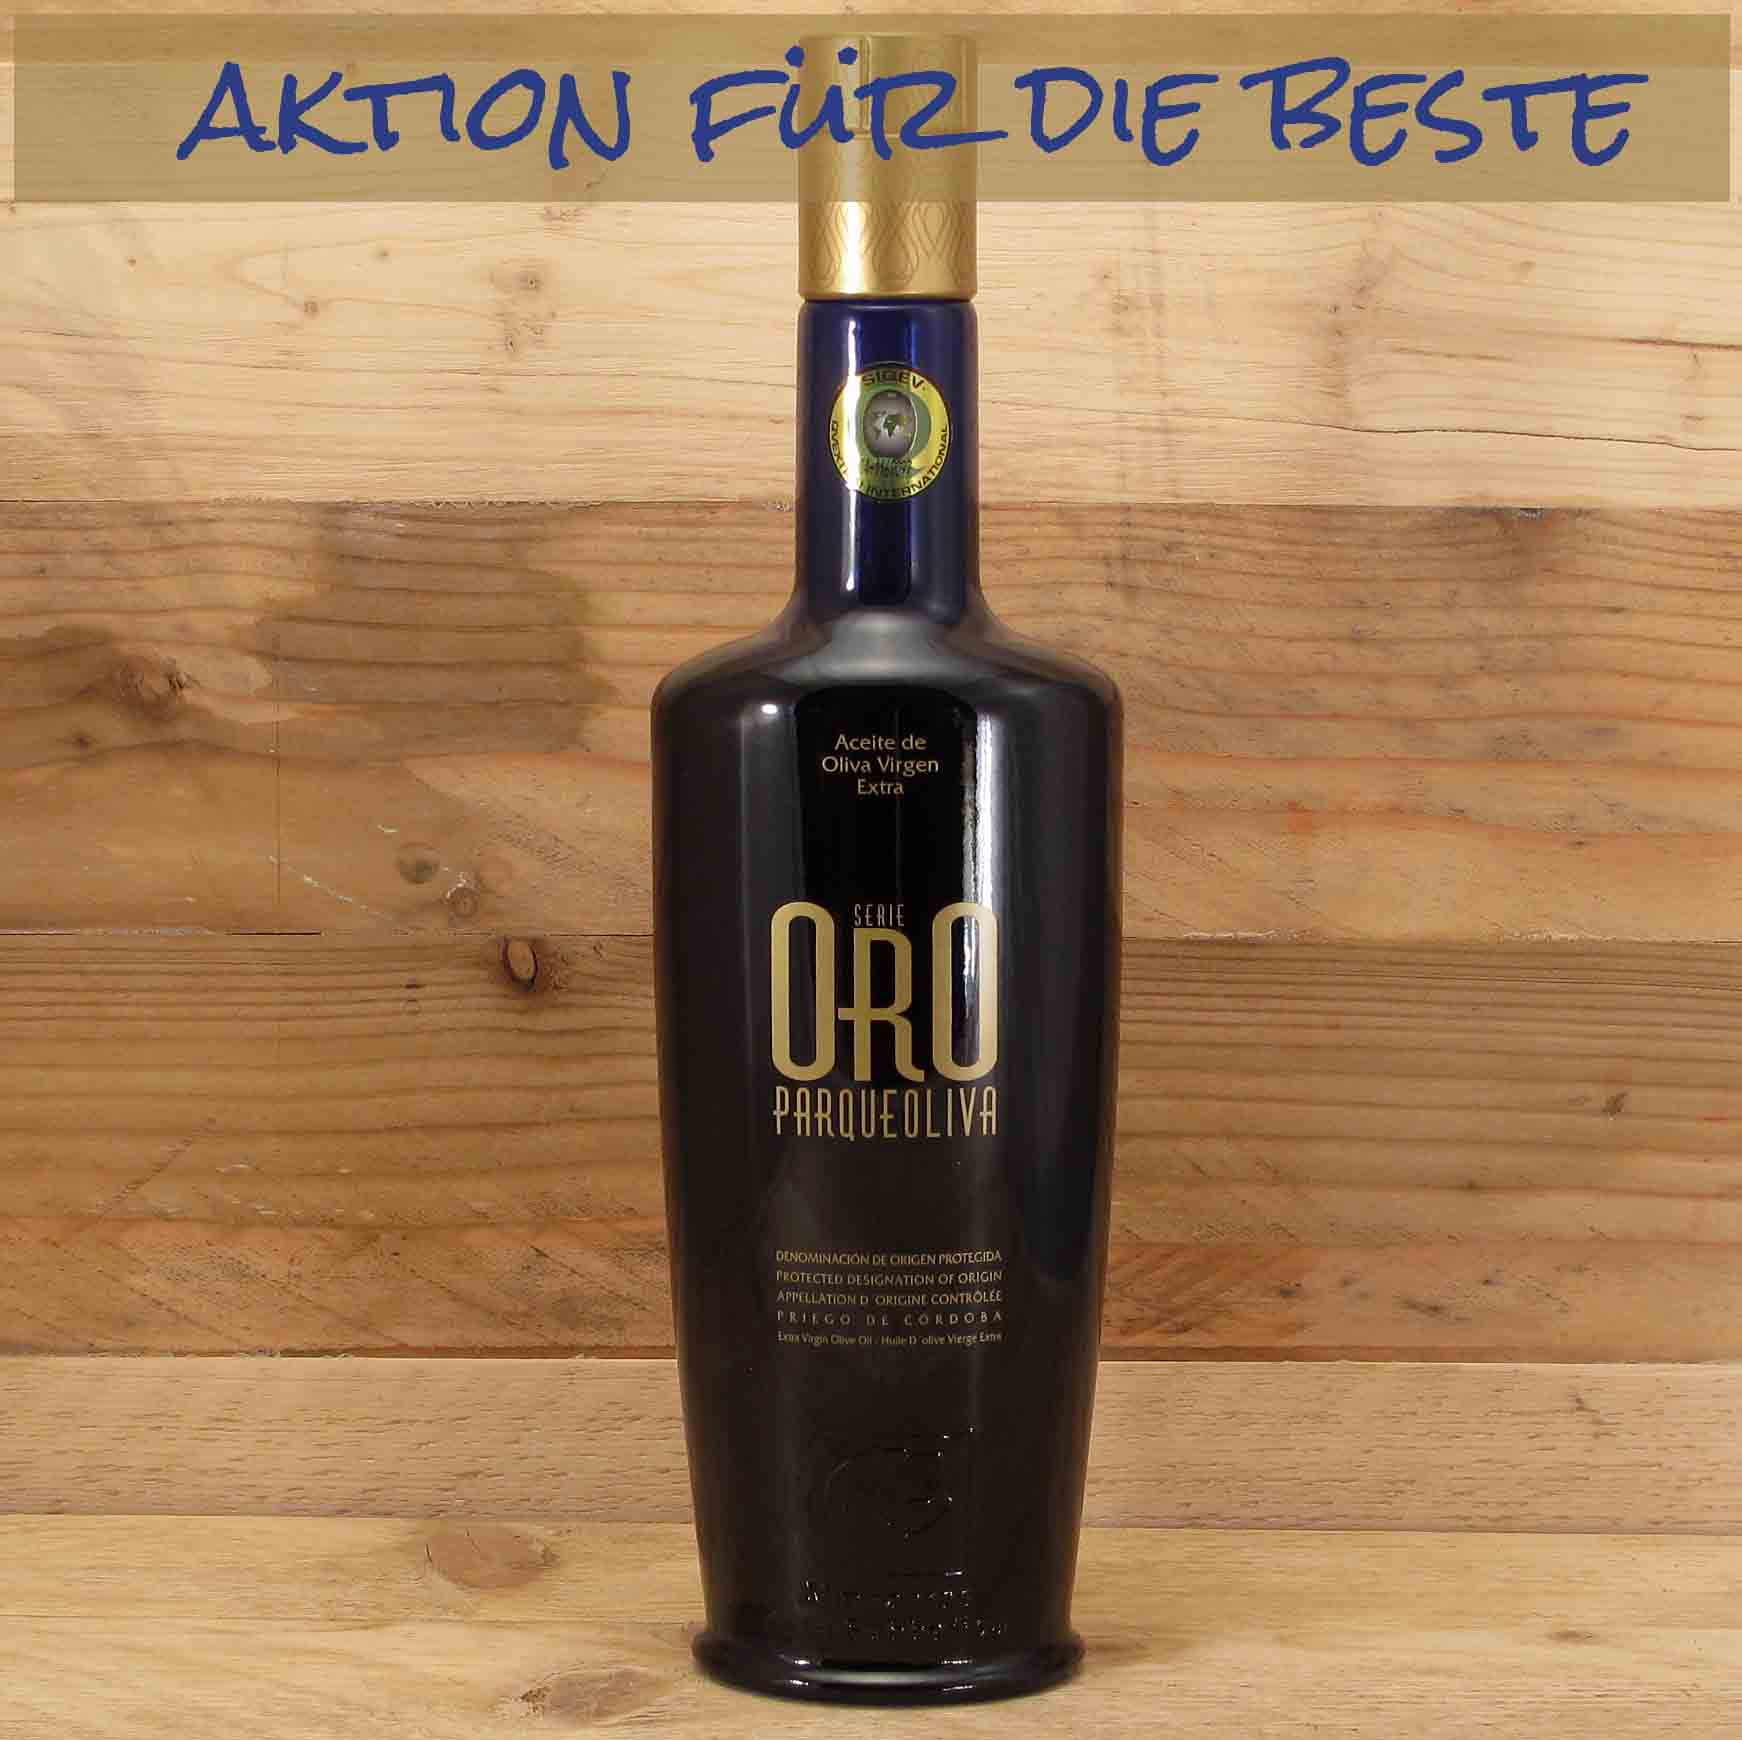 Aktion-fur-die-Beste65D4Tj06mT6pJ